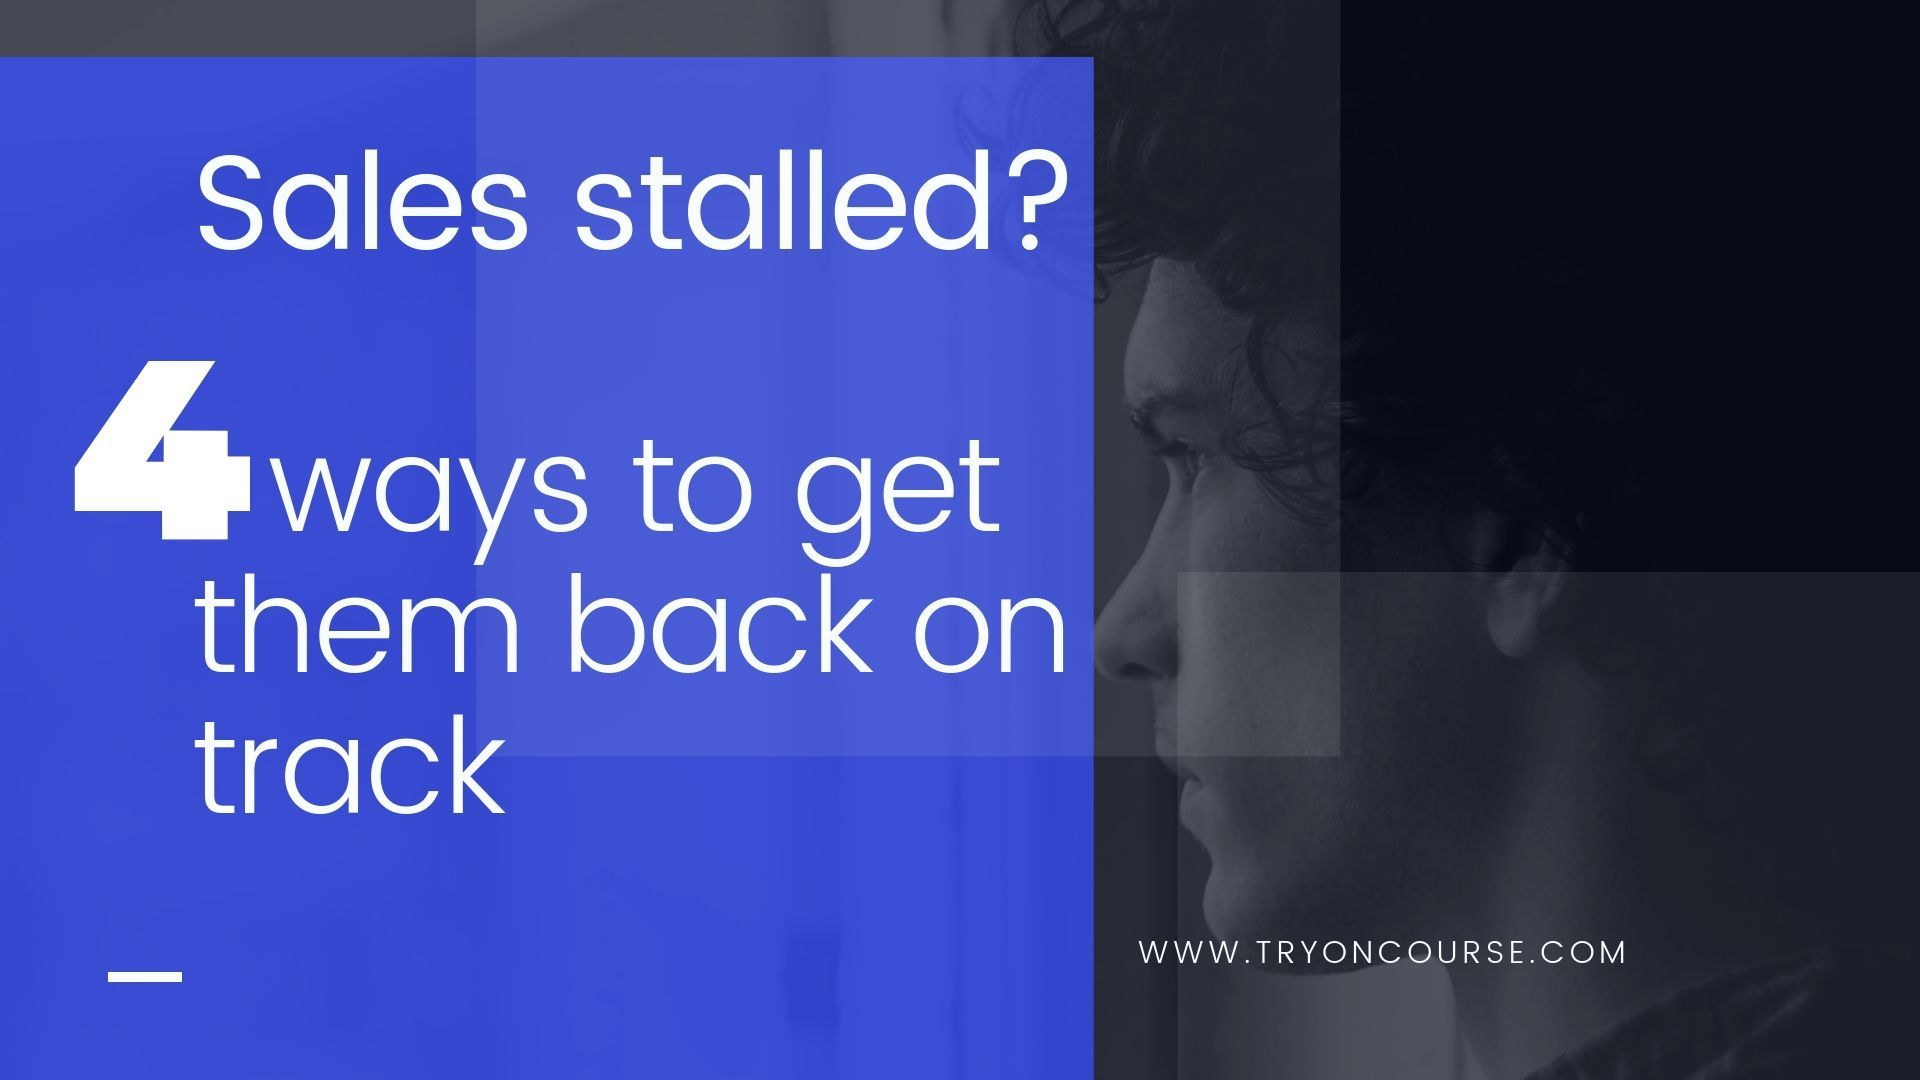 Sales stalled? 4 ways to get them back on track